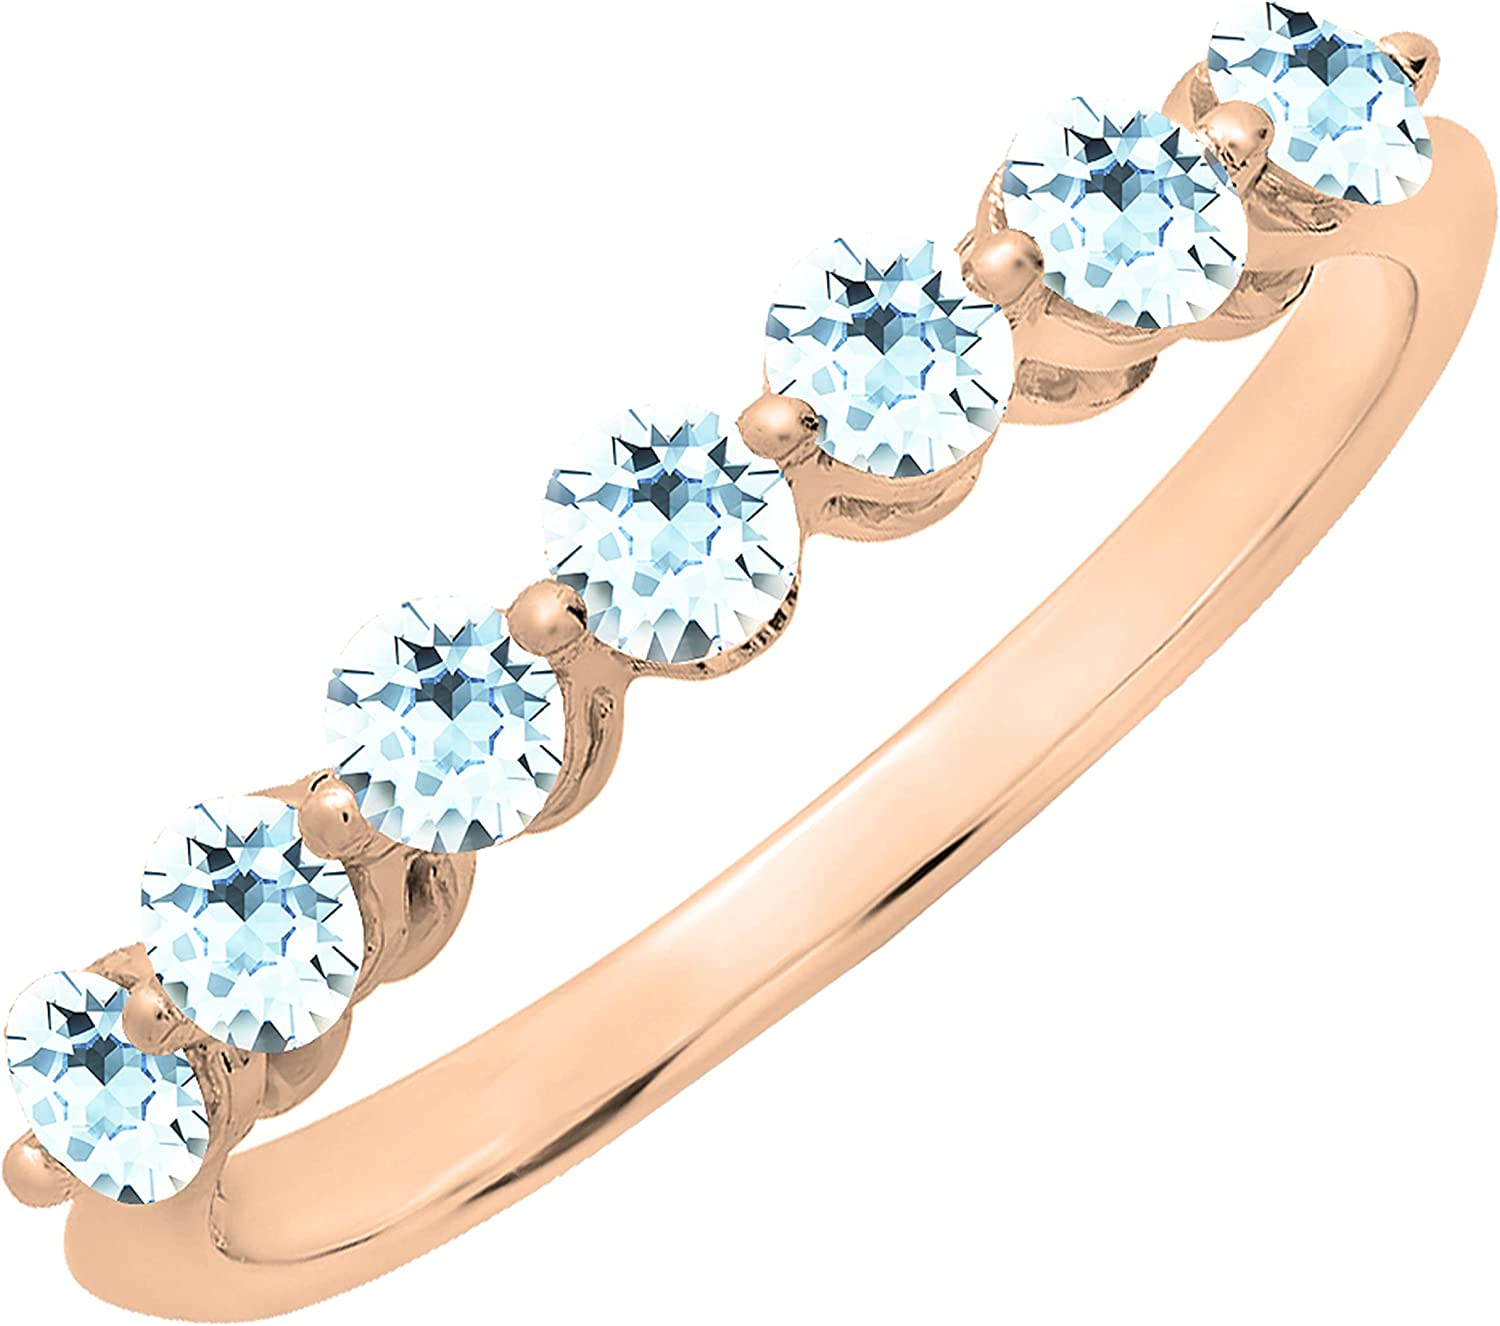 Dazzlingrock Collection Round Diamond or Gemstones Ladies Bridal Seven Stones Stackable Anniversary Wedding Band|Available in Various Metal 10K/14K/18K Gold